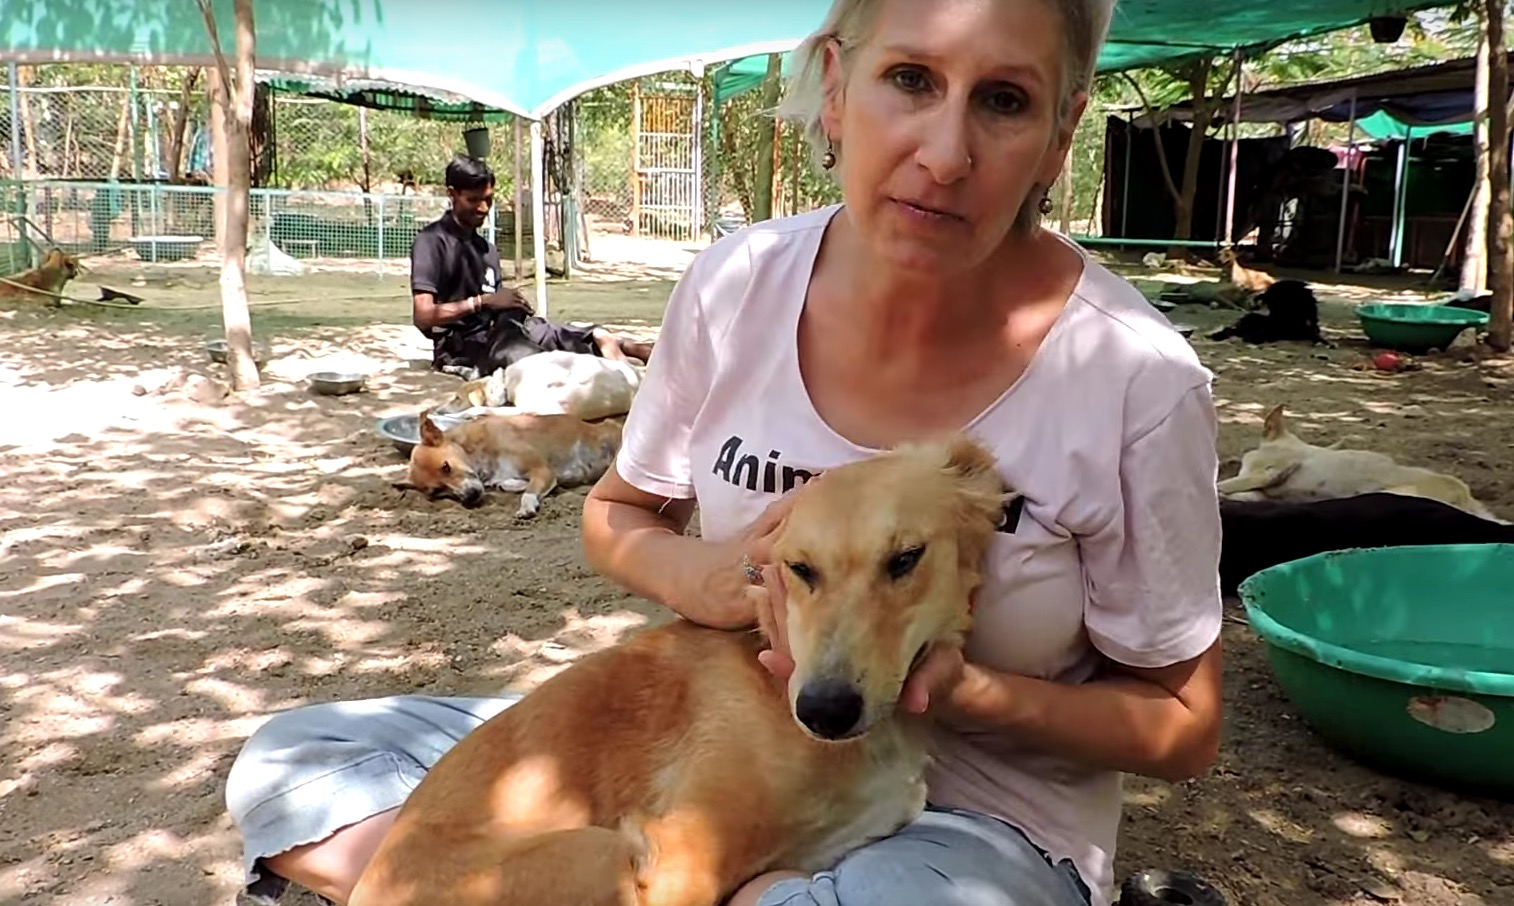 animal-aid-chien-train-blessures-5